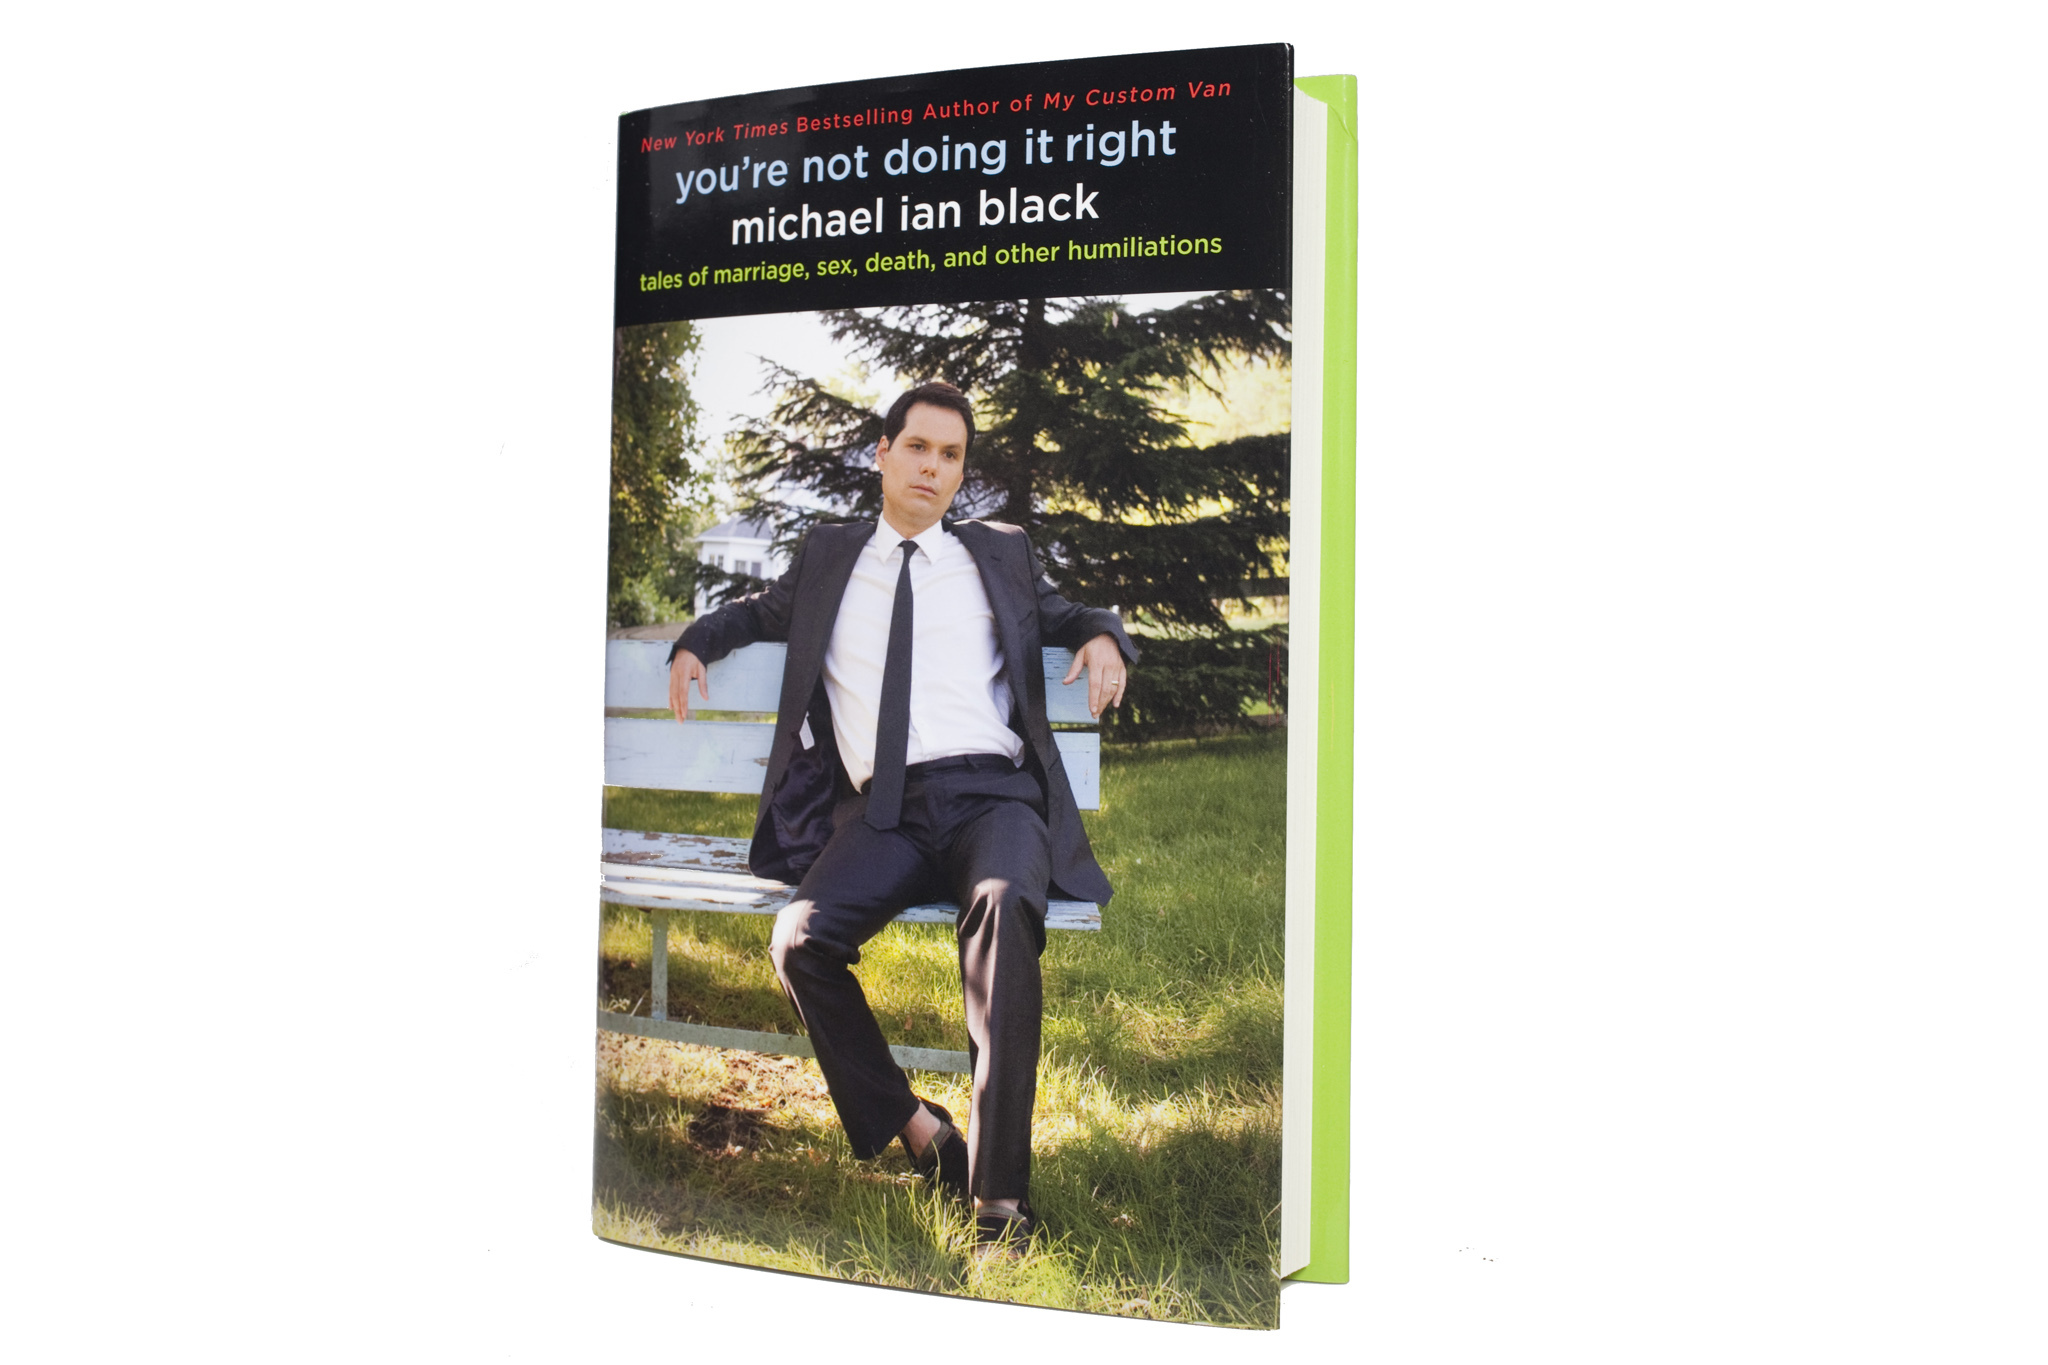 You're Not Doing It Right by Michael Ian Black (Gallery Books, $24) Reviewed by Jill Schwartz